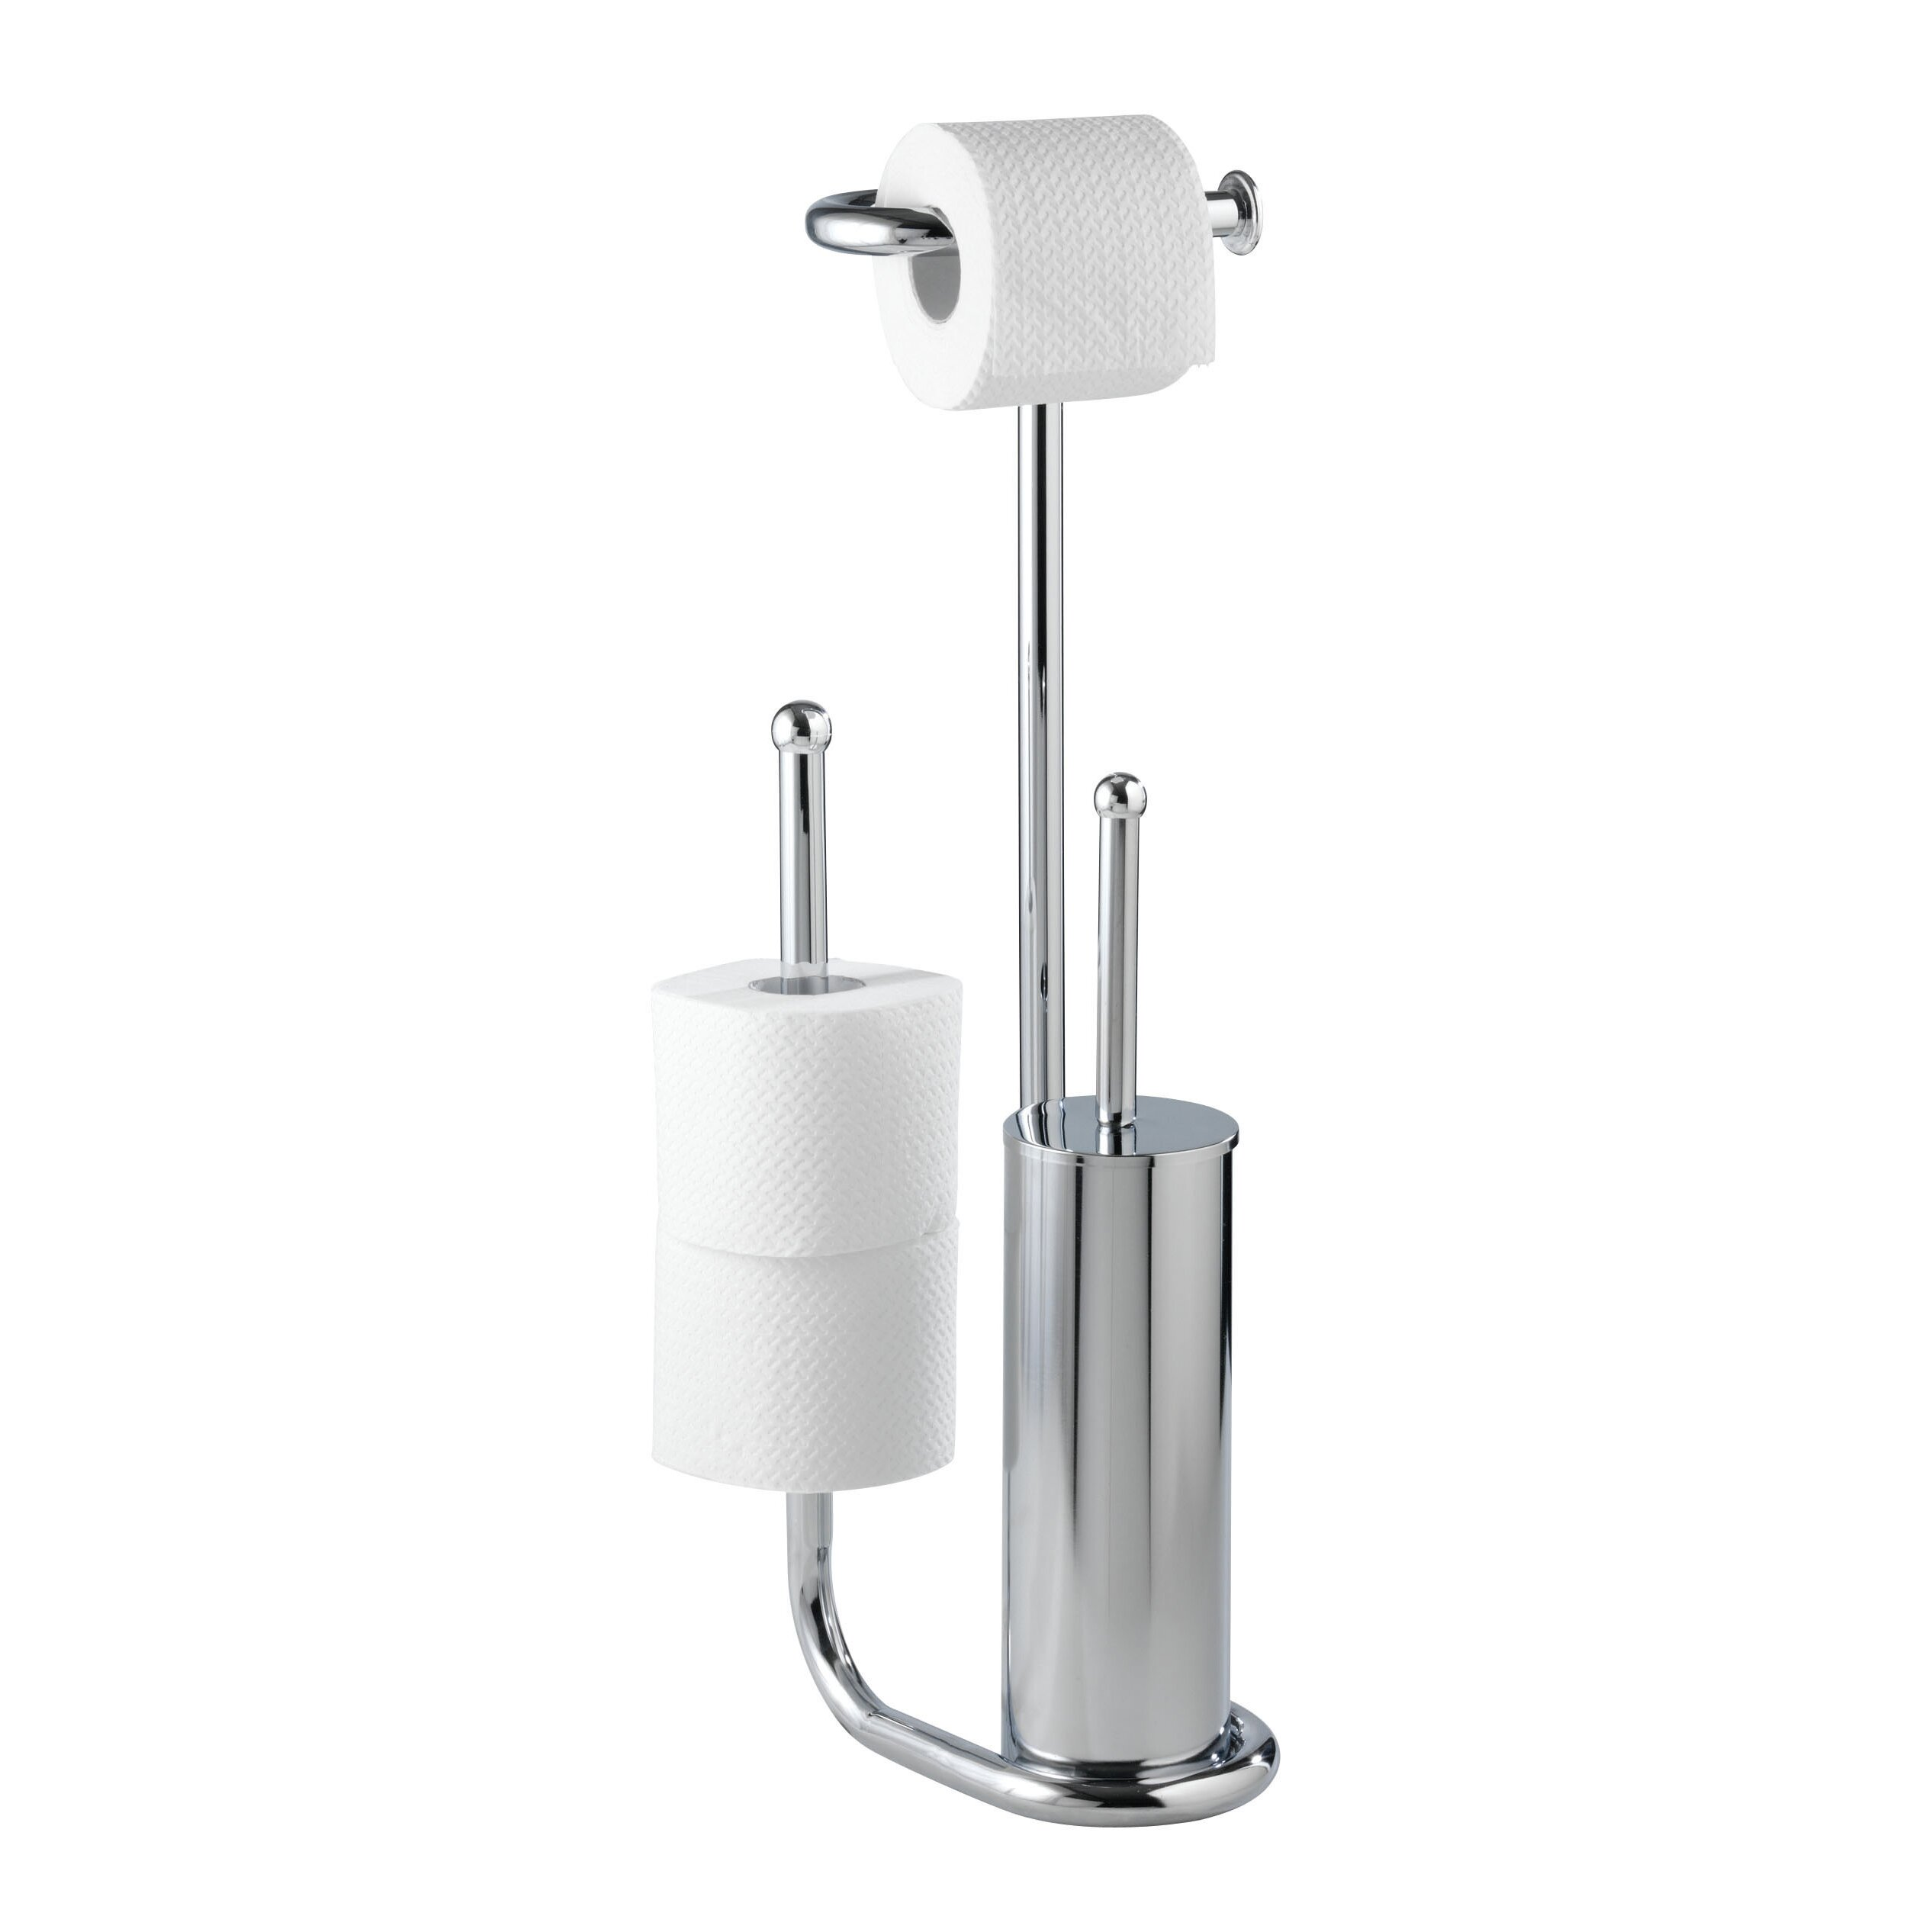 Wenko universalo free standing toilet roll and brush Glass toilet roll holder